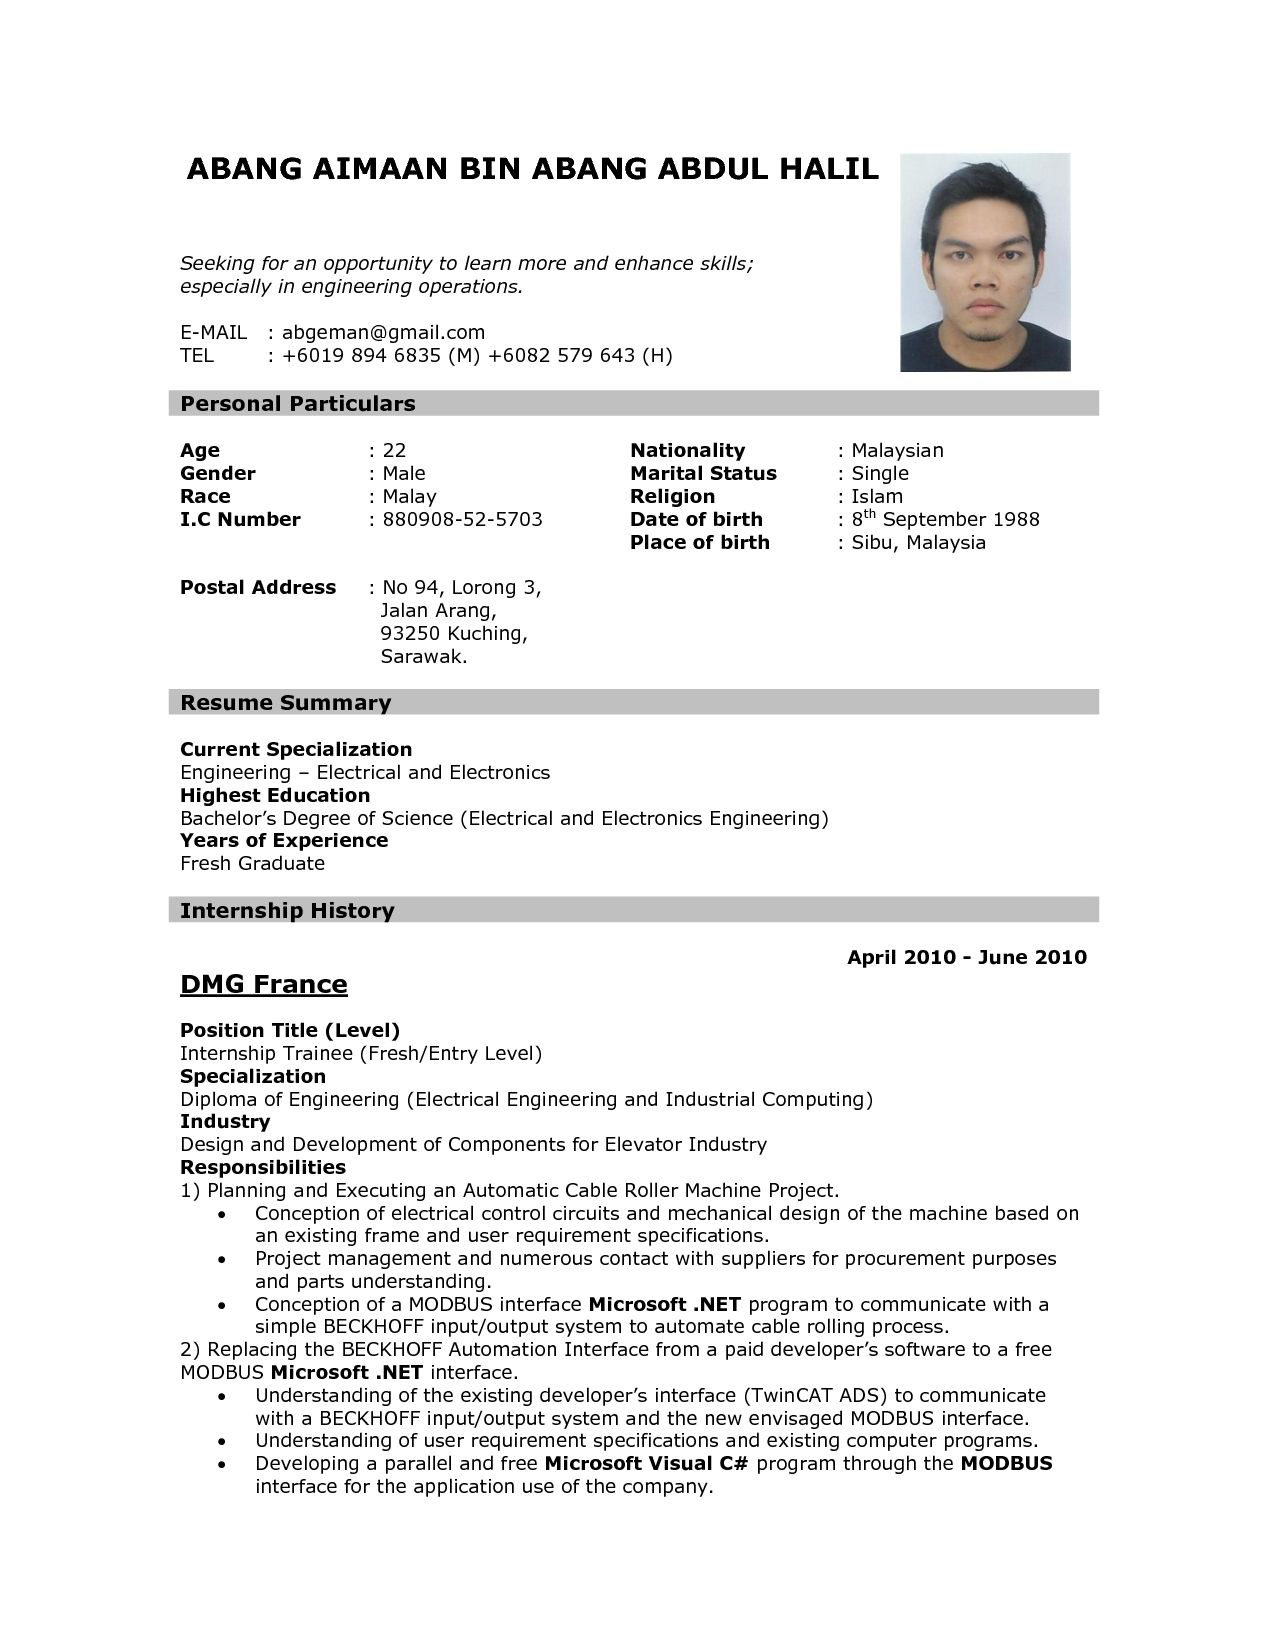 Free Sample Resumes Format Of Resume For Job Application To Download Data